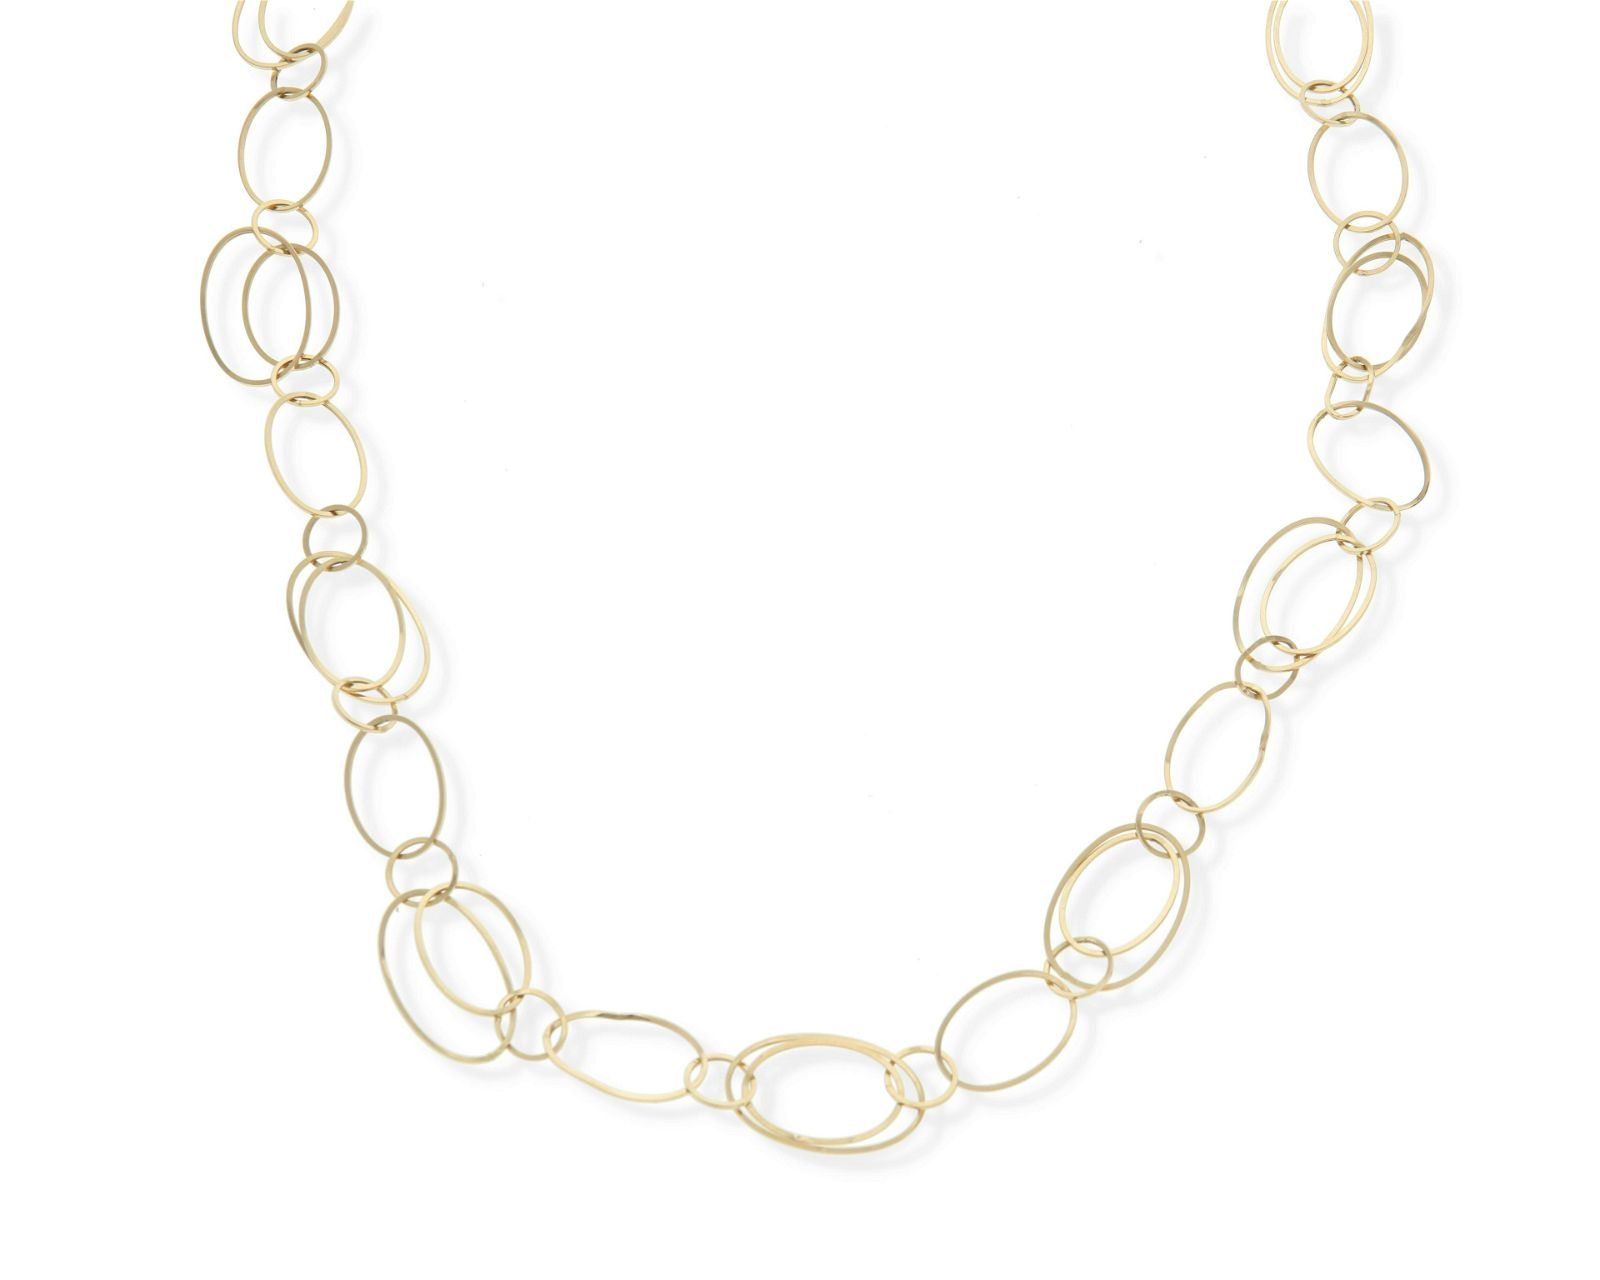 A gold link necklace